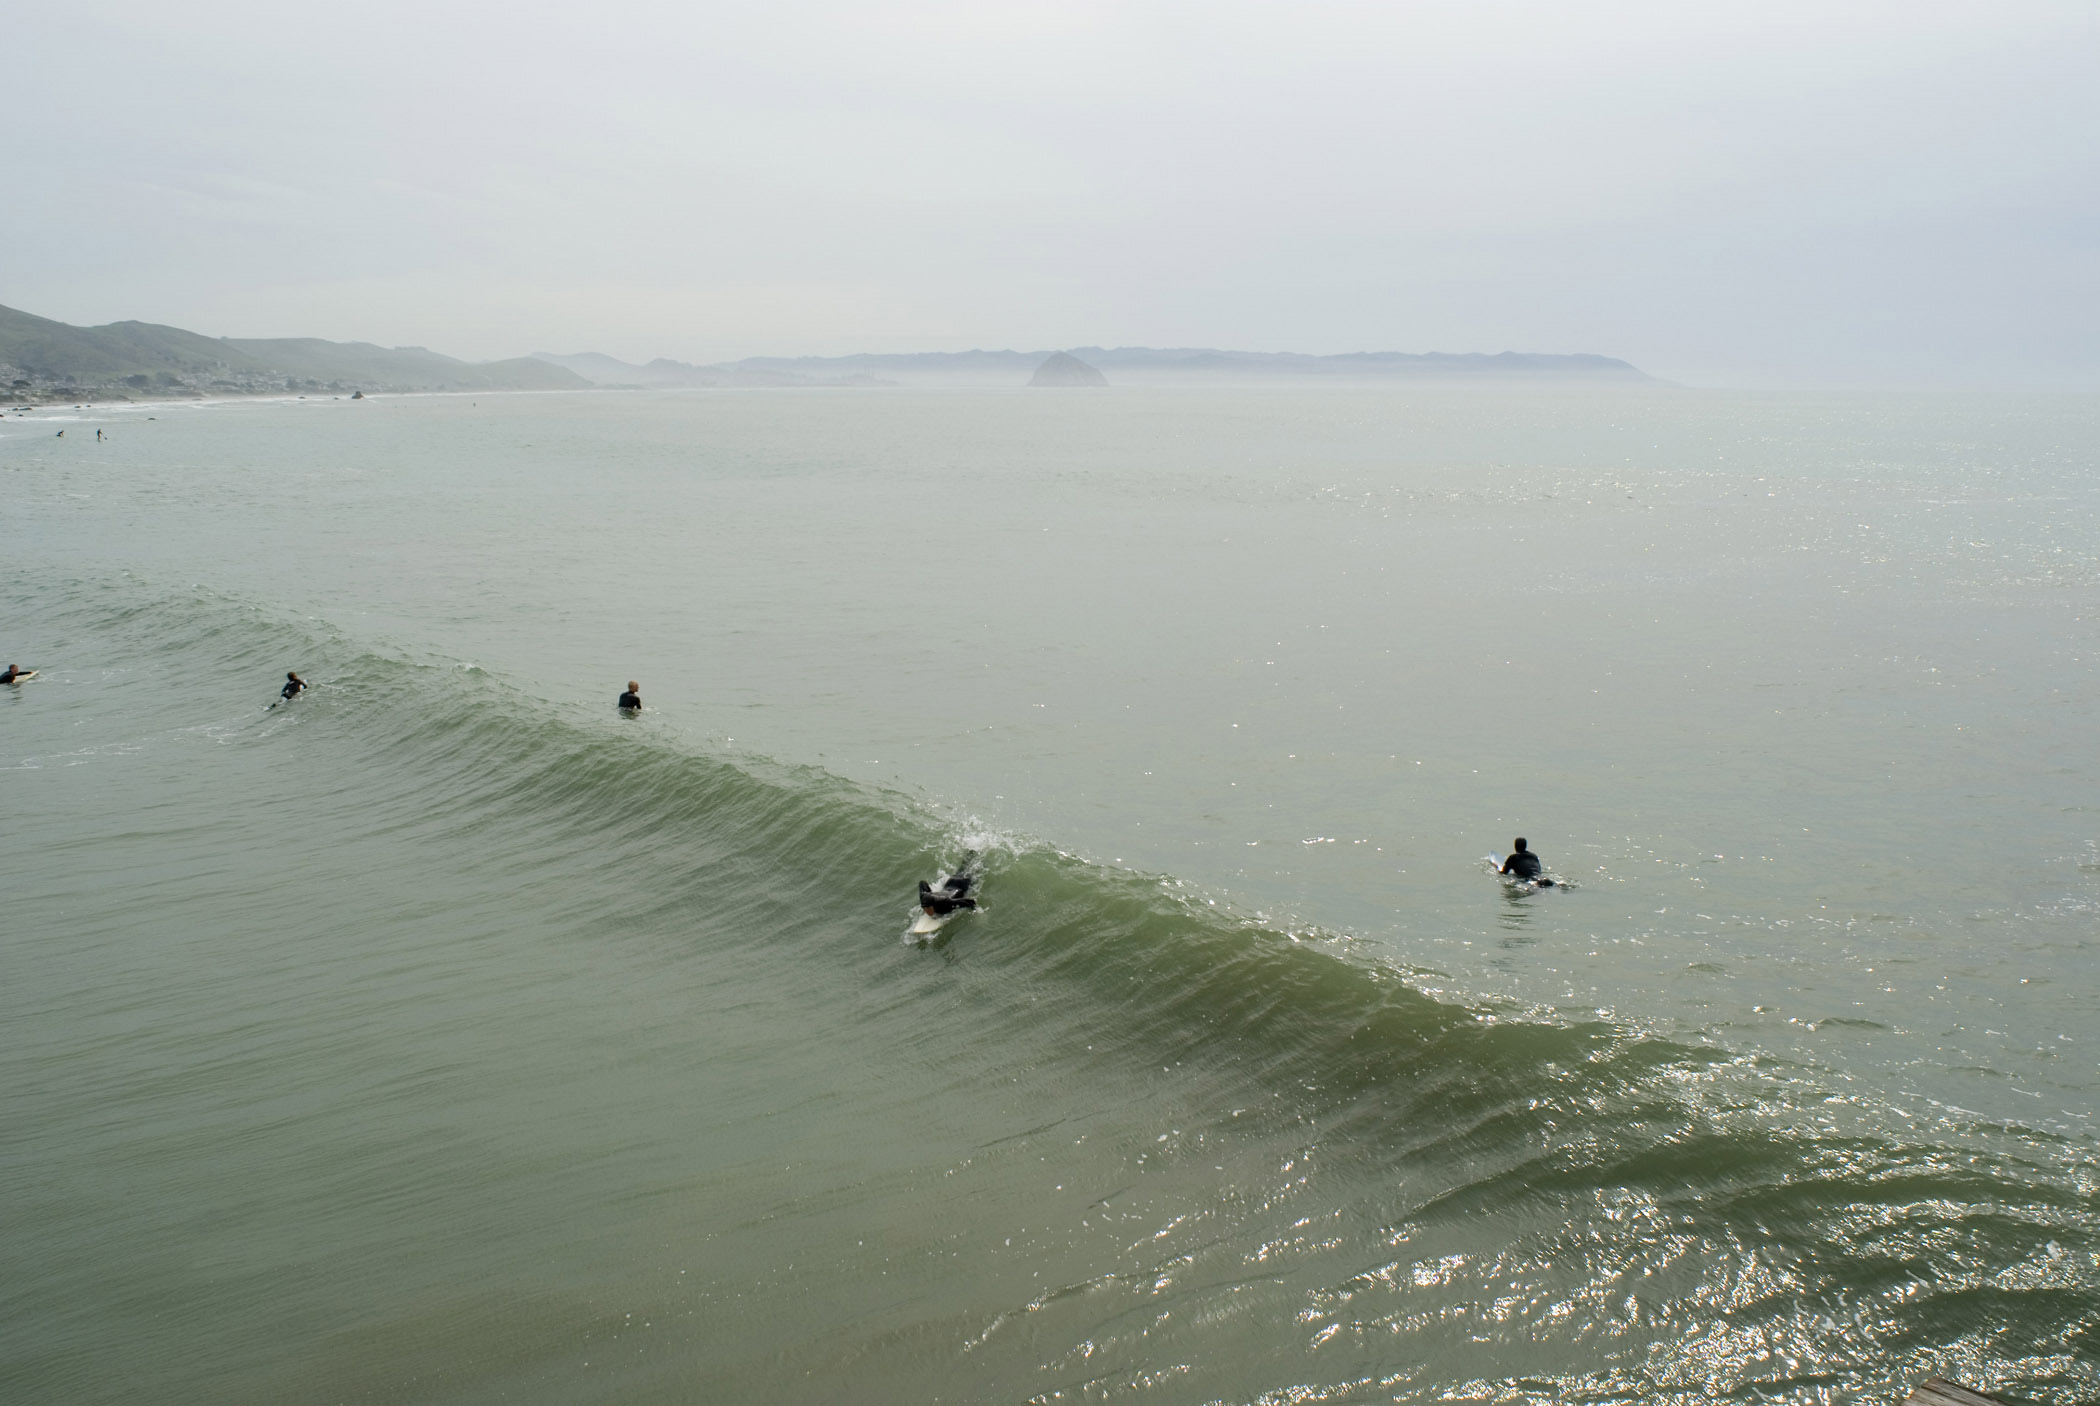 Professional Surfers at Beautiful California Beach in Aerial Extensive View. Isolated on Foggy Sky Background.